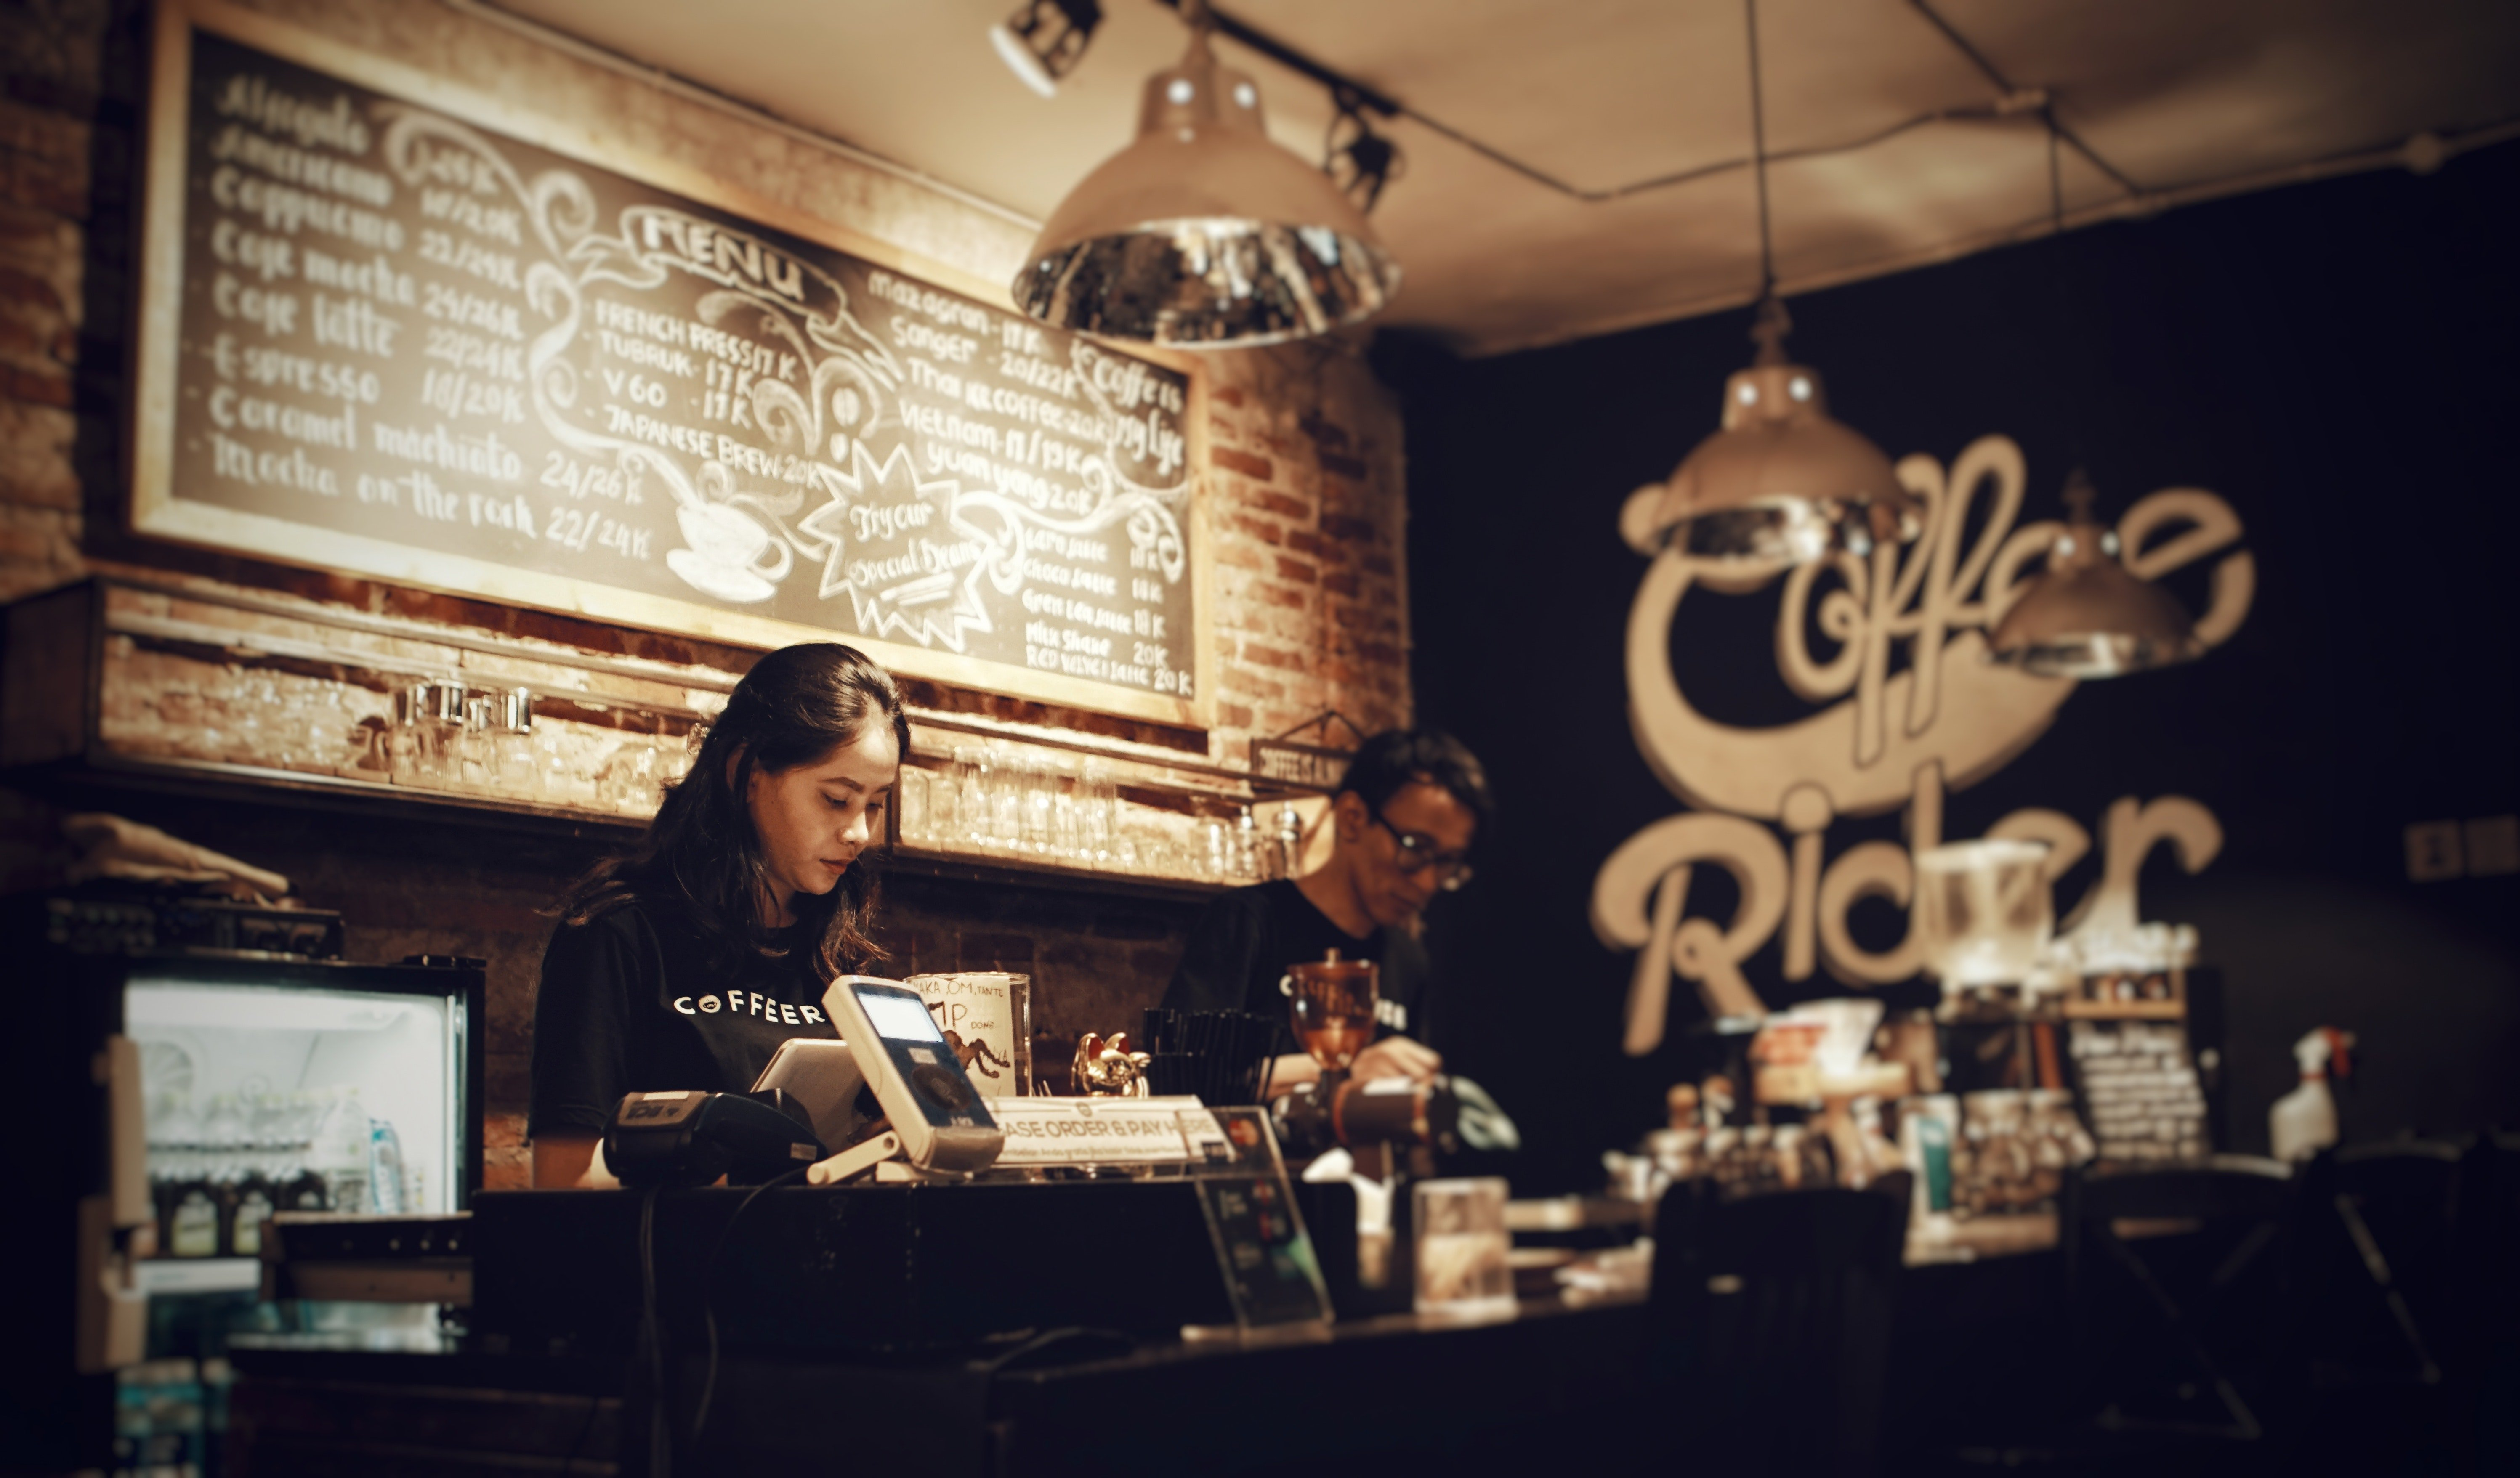 A cashier working at the counter   Source: Pexels.com